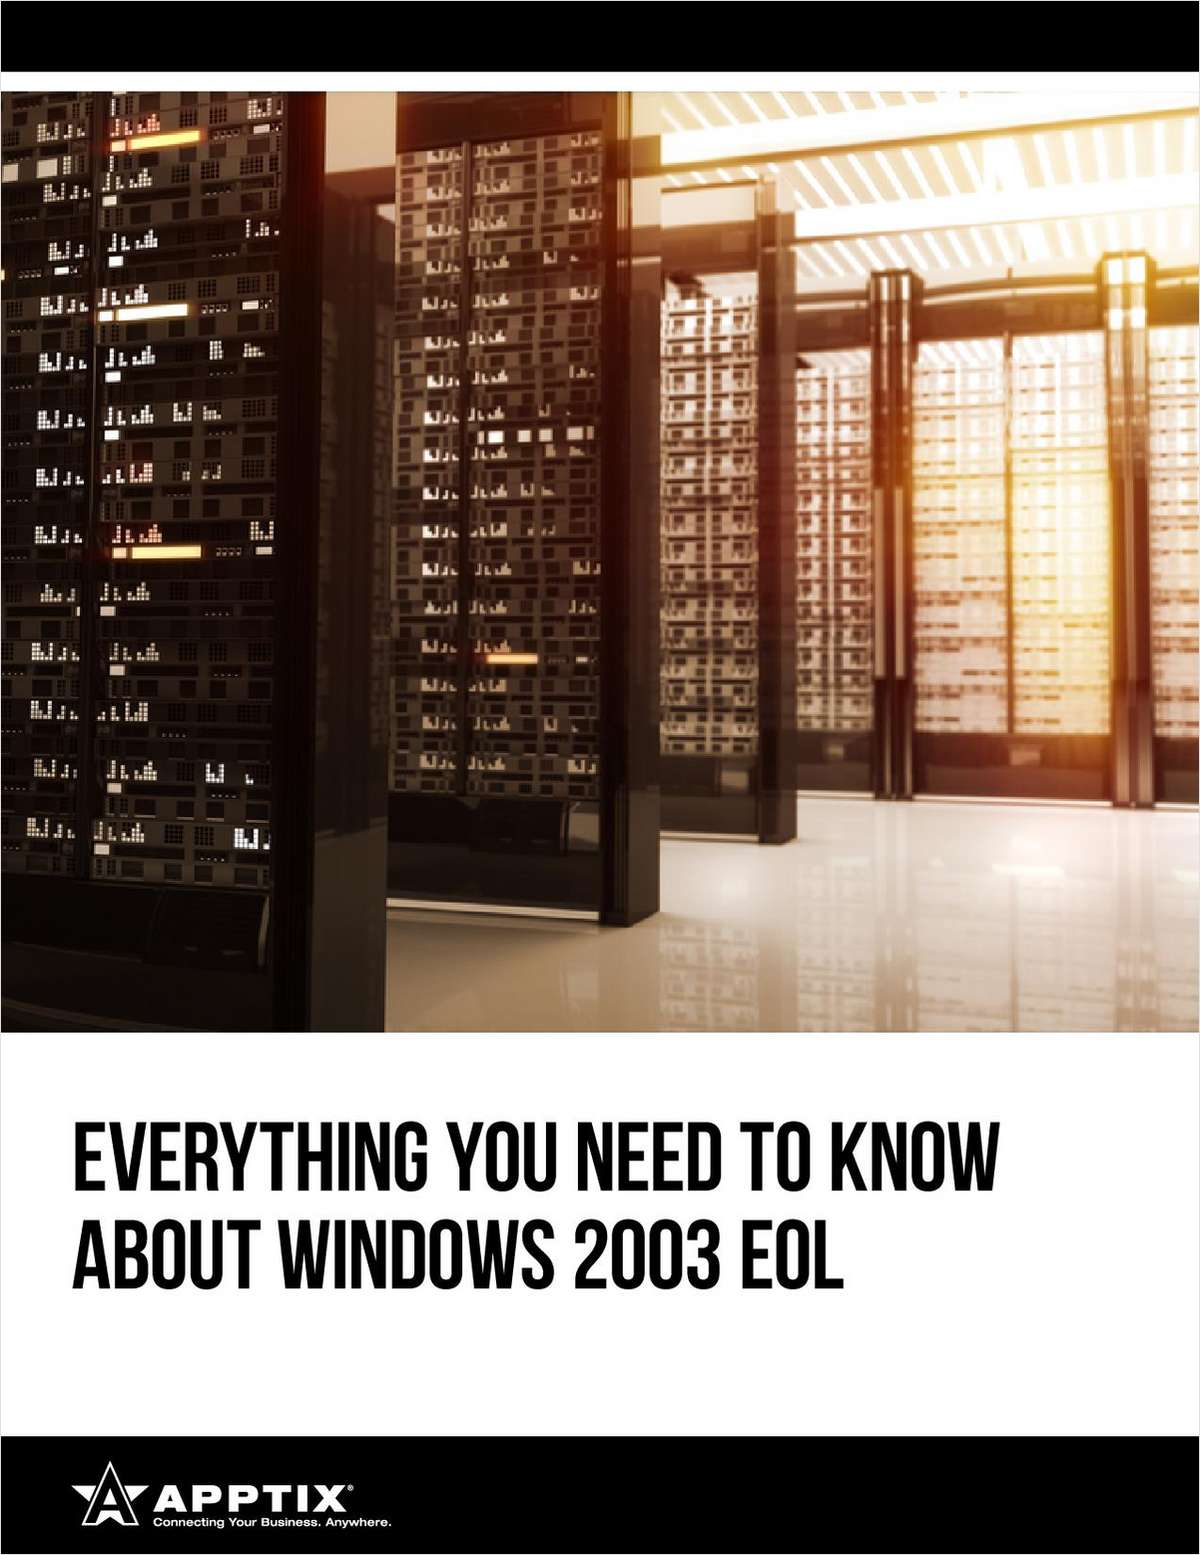 Everything You Need To Know About Windows 2003 End of Life